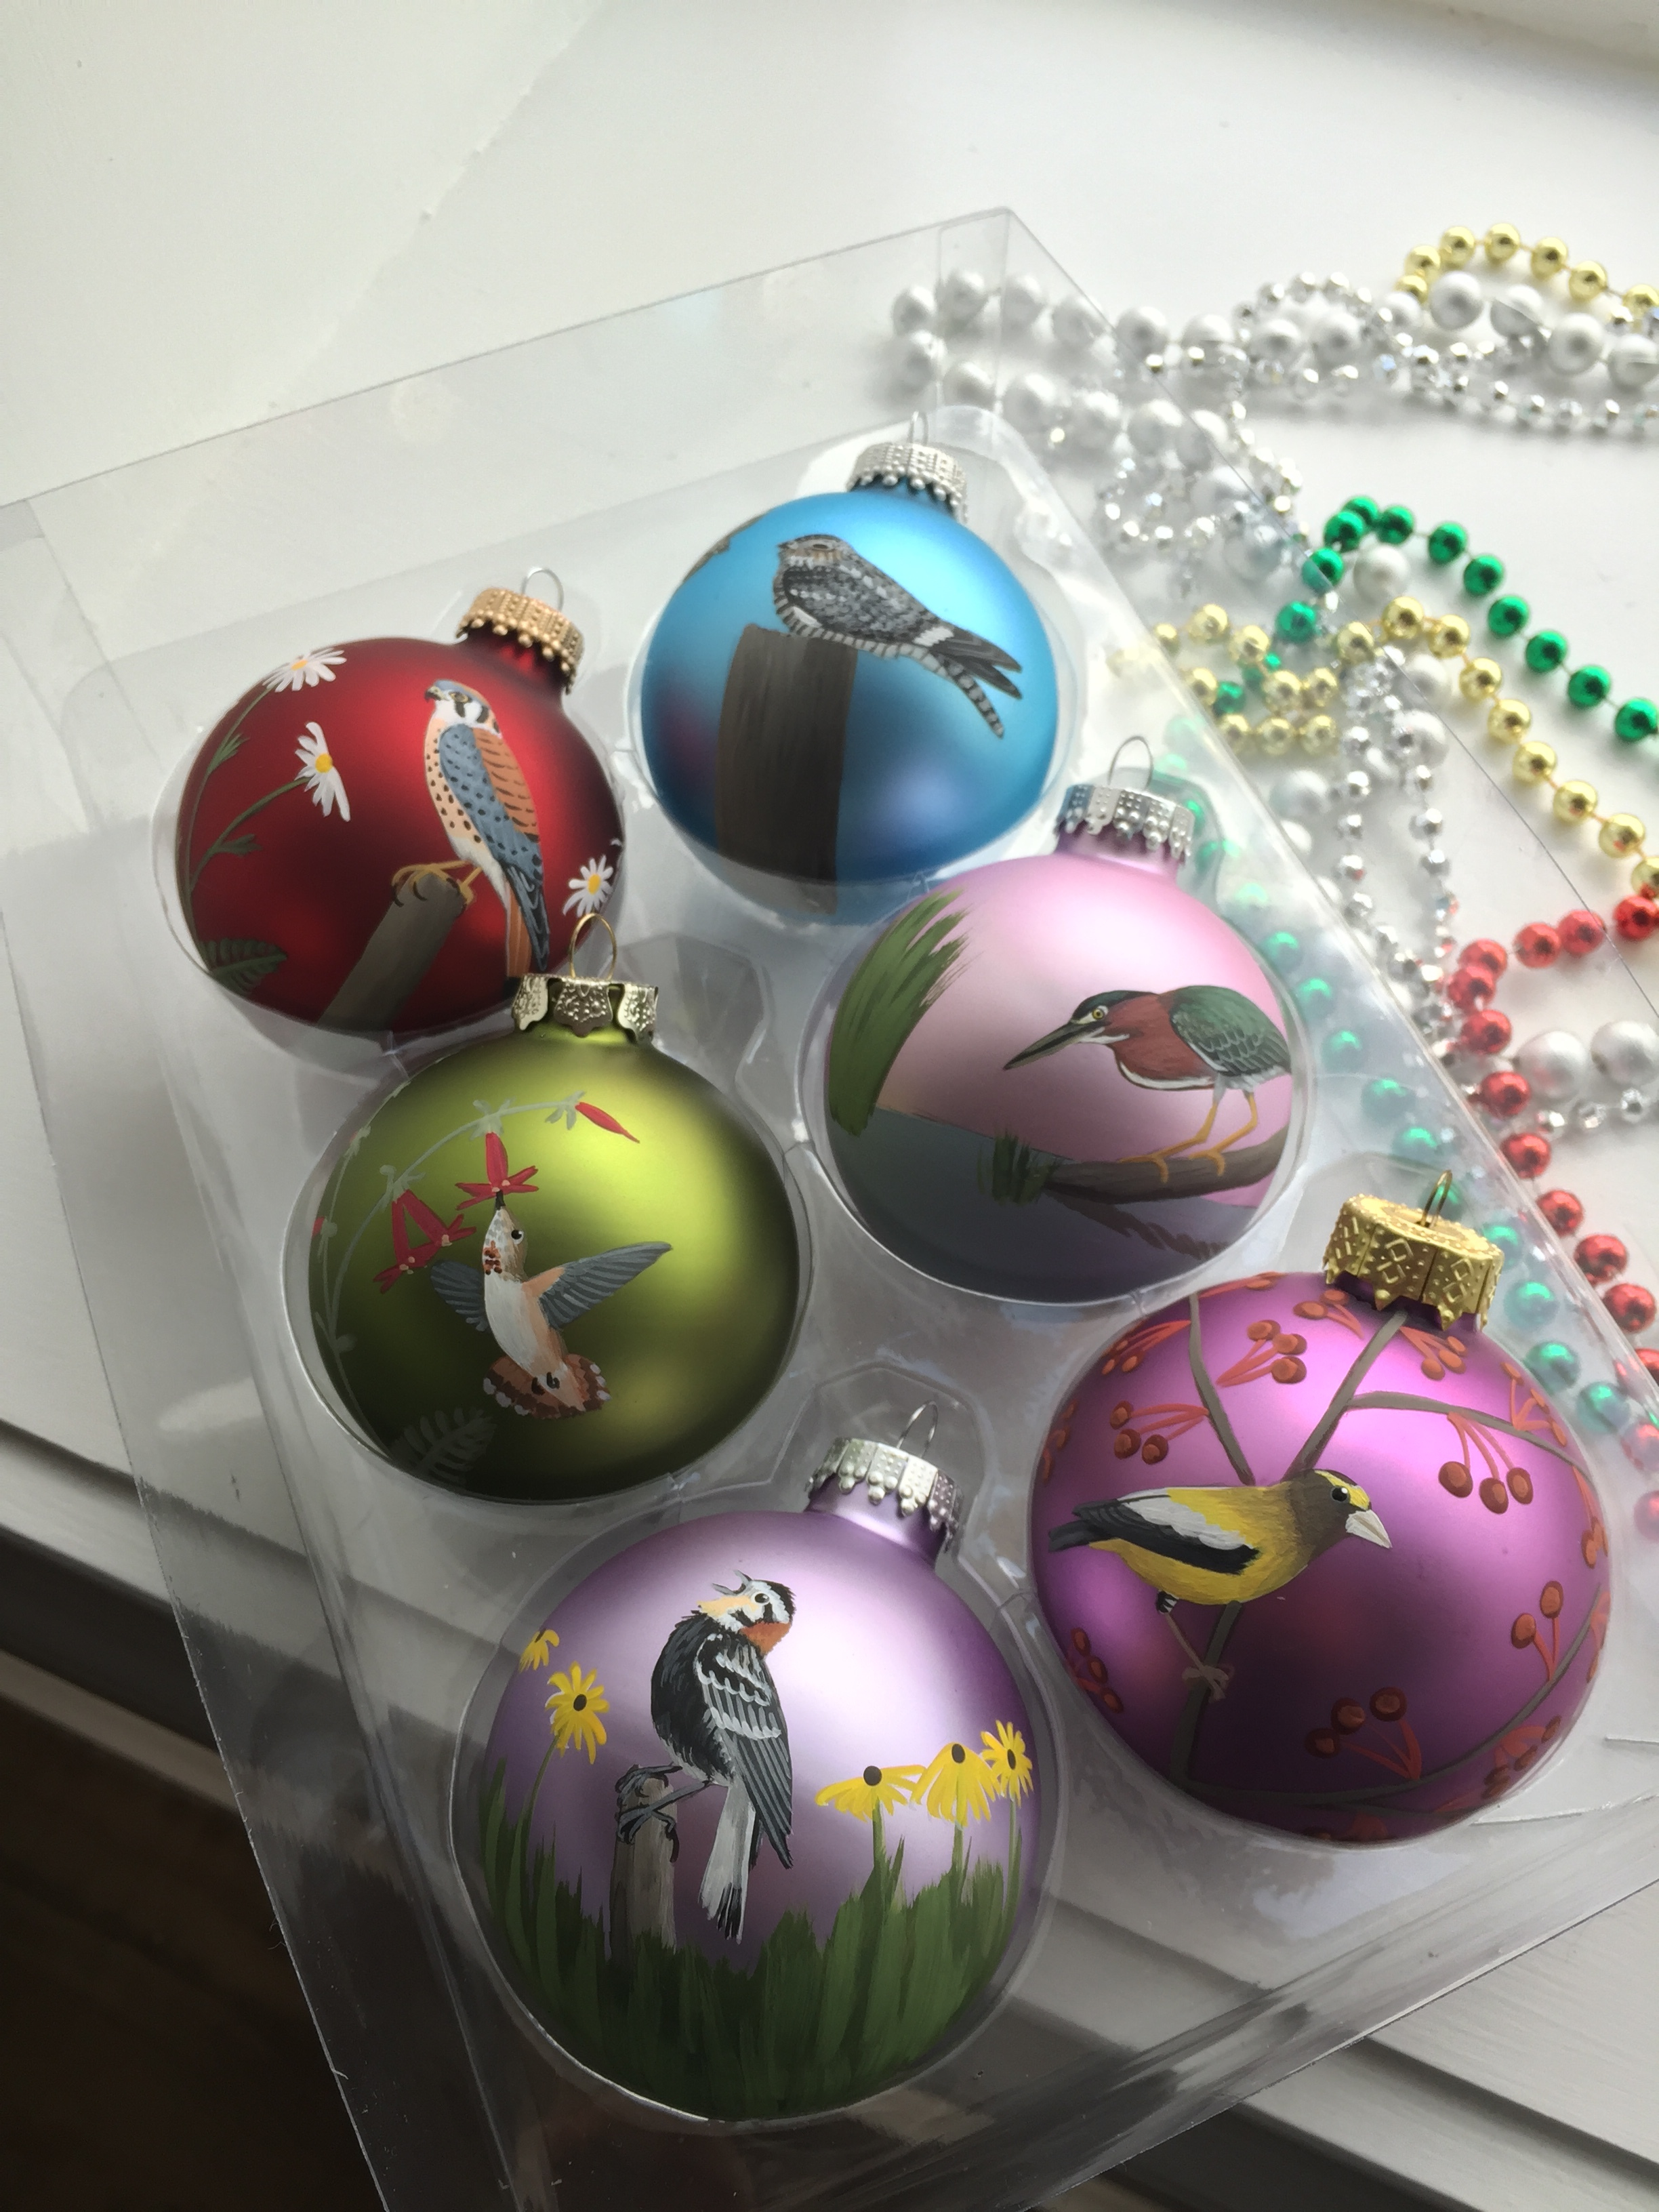 Awesome Christmas ornaments for sale!